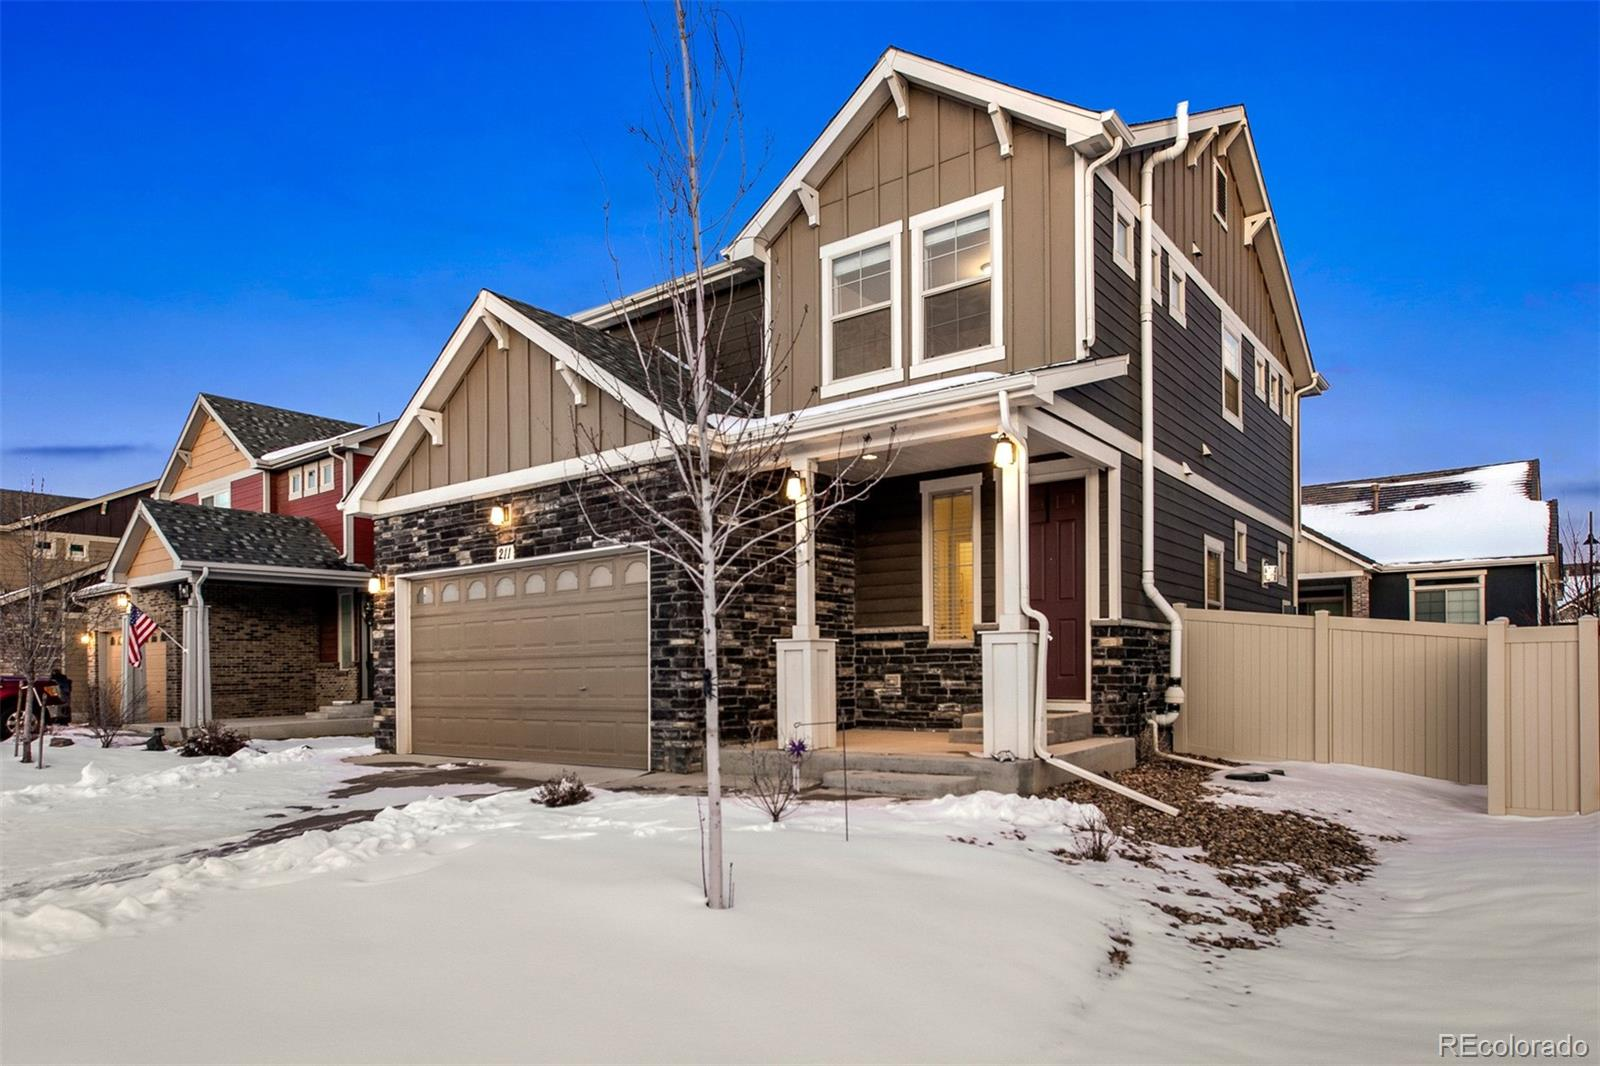 MLS# 6282621 - 1 - 211 Pear Lake Way, Erie, CO 80516